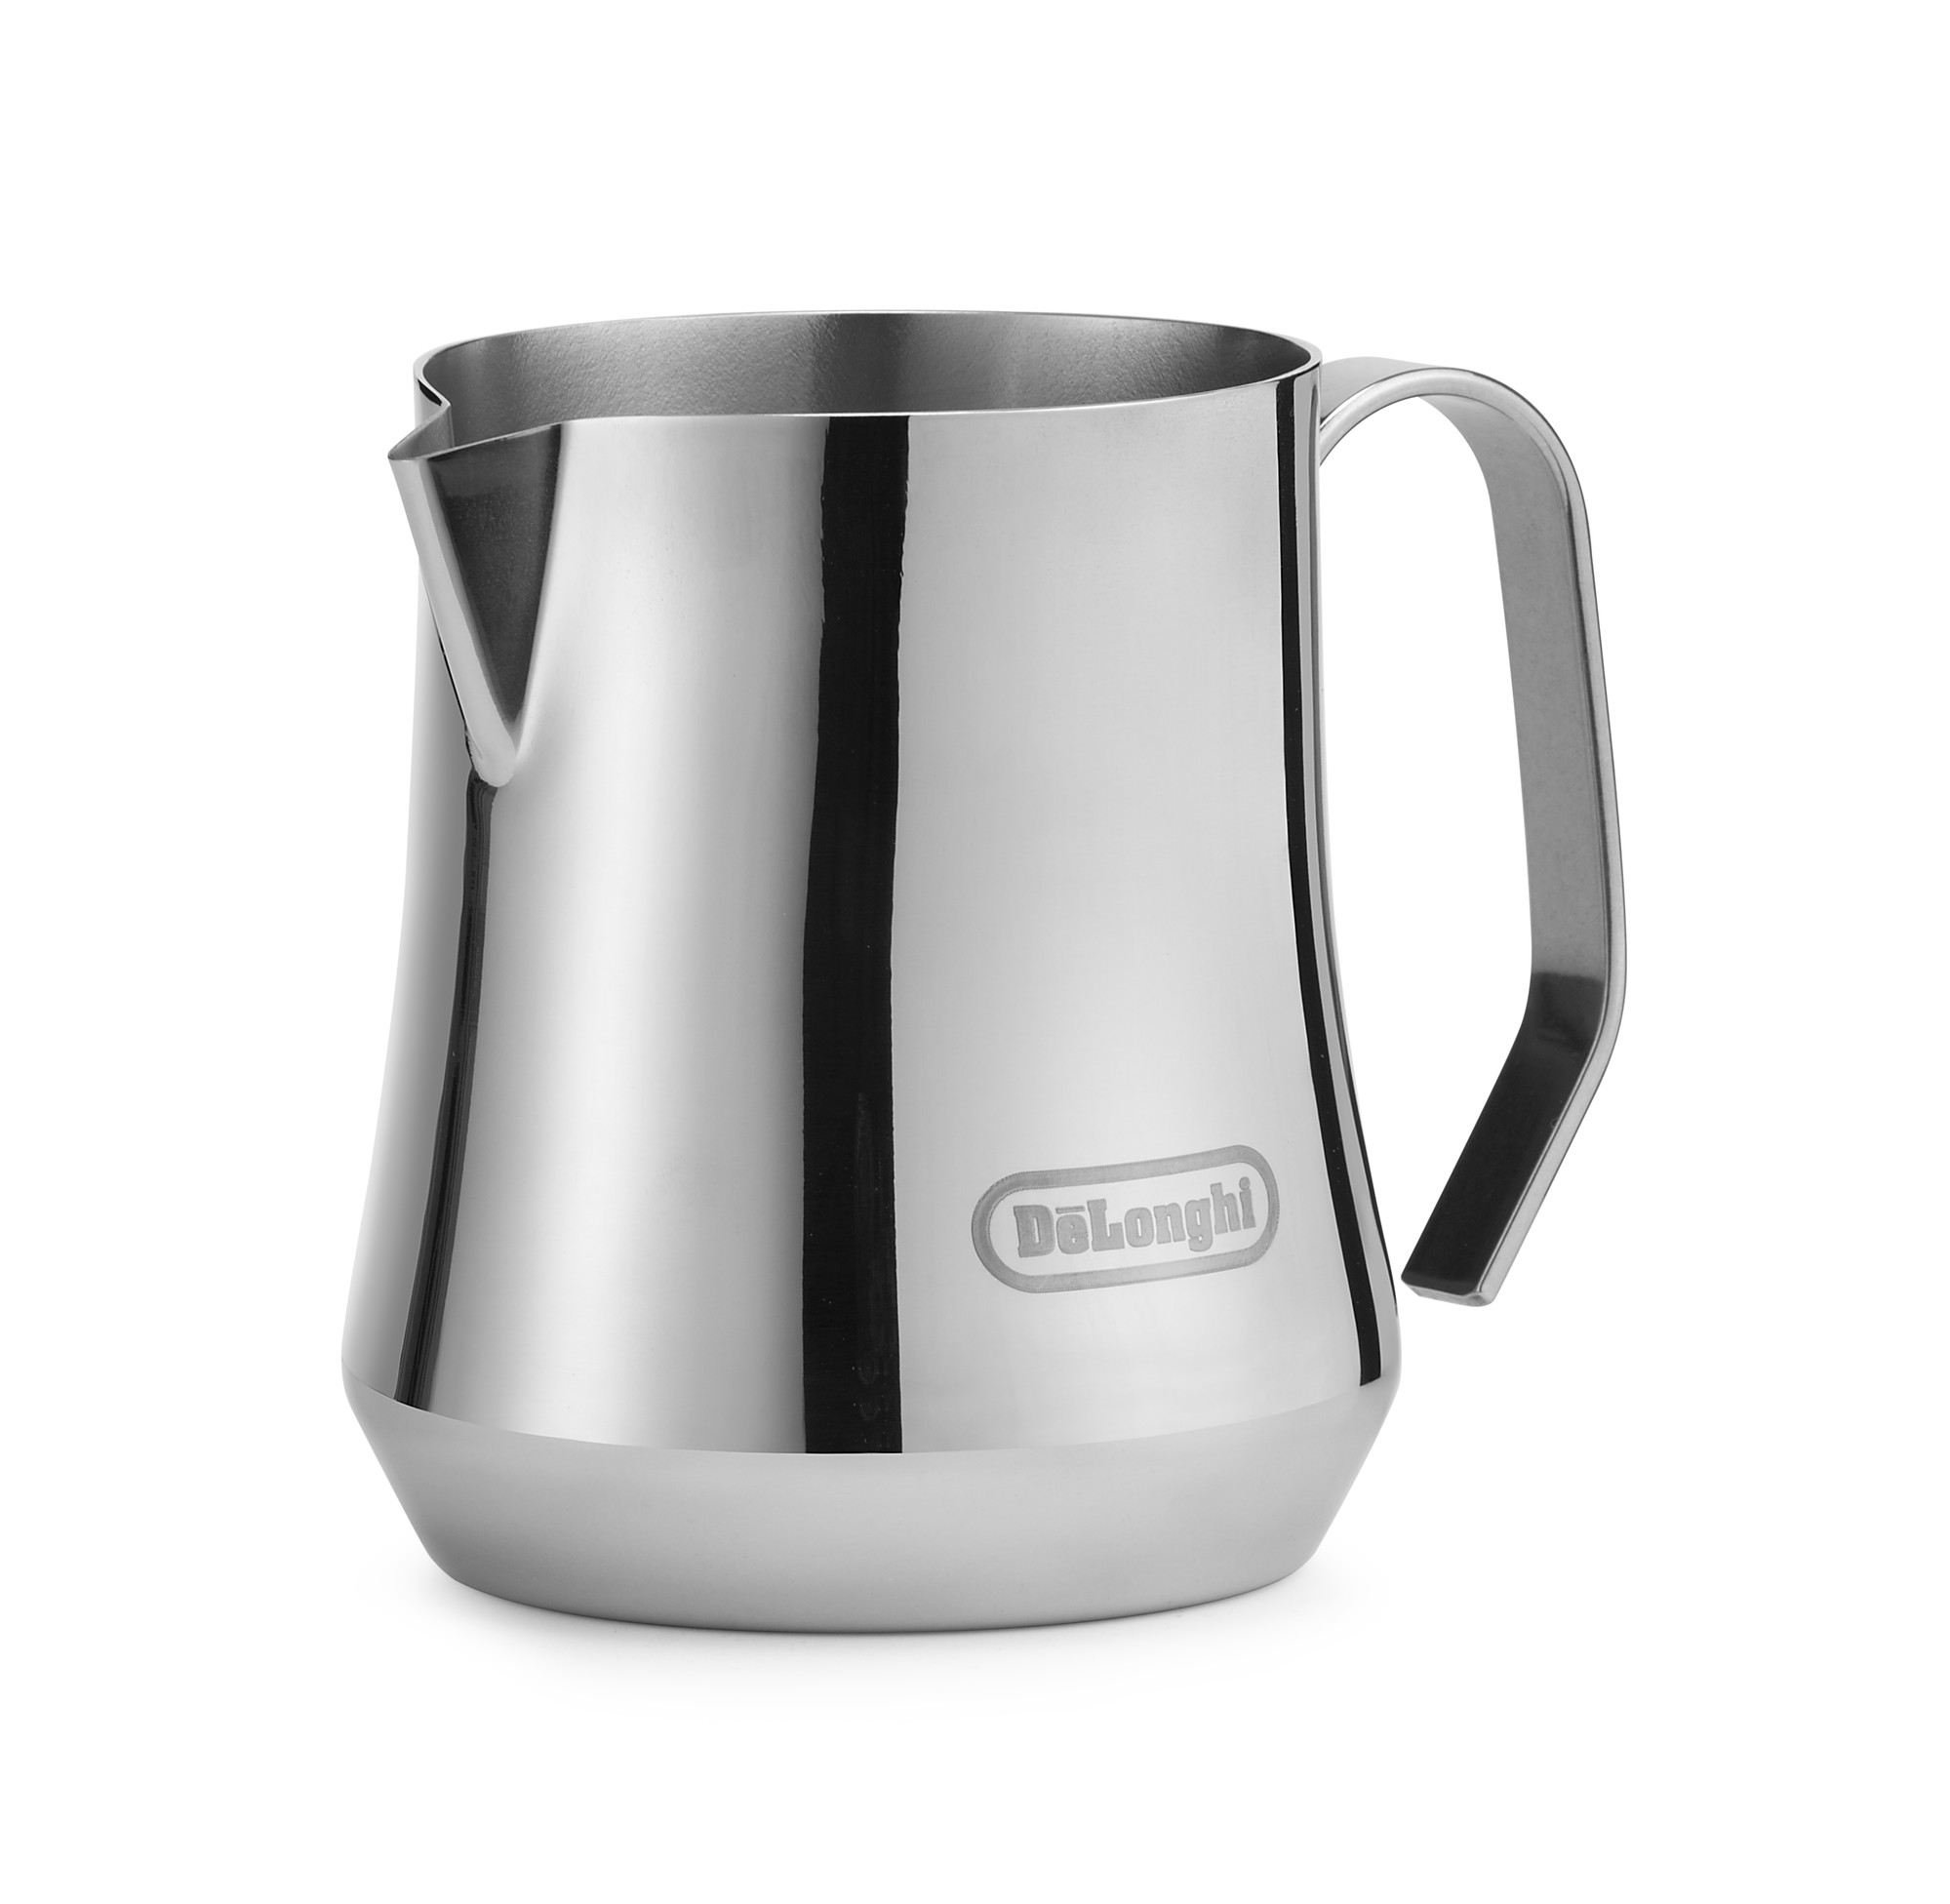 a milk frothing jug